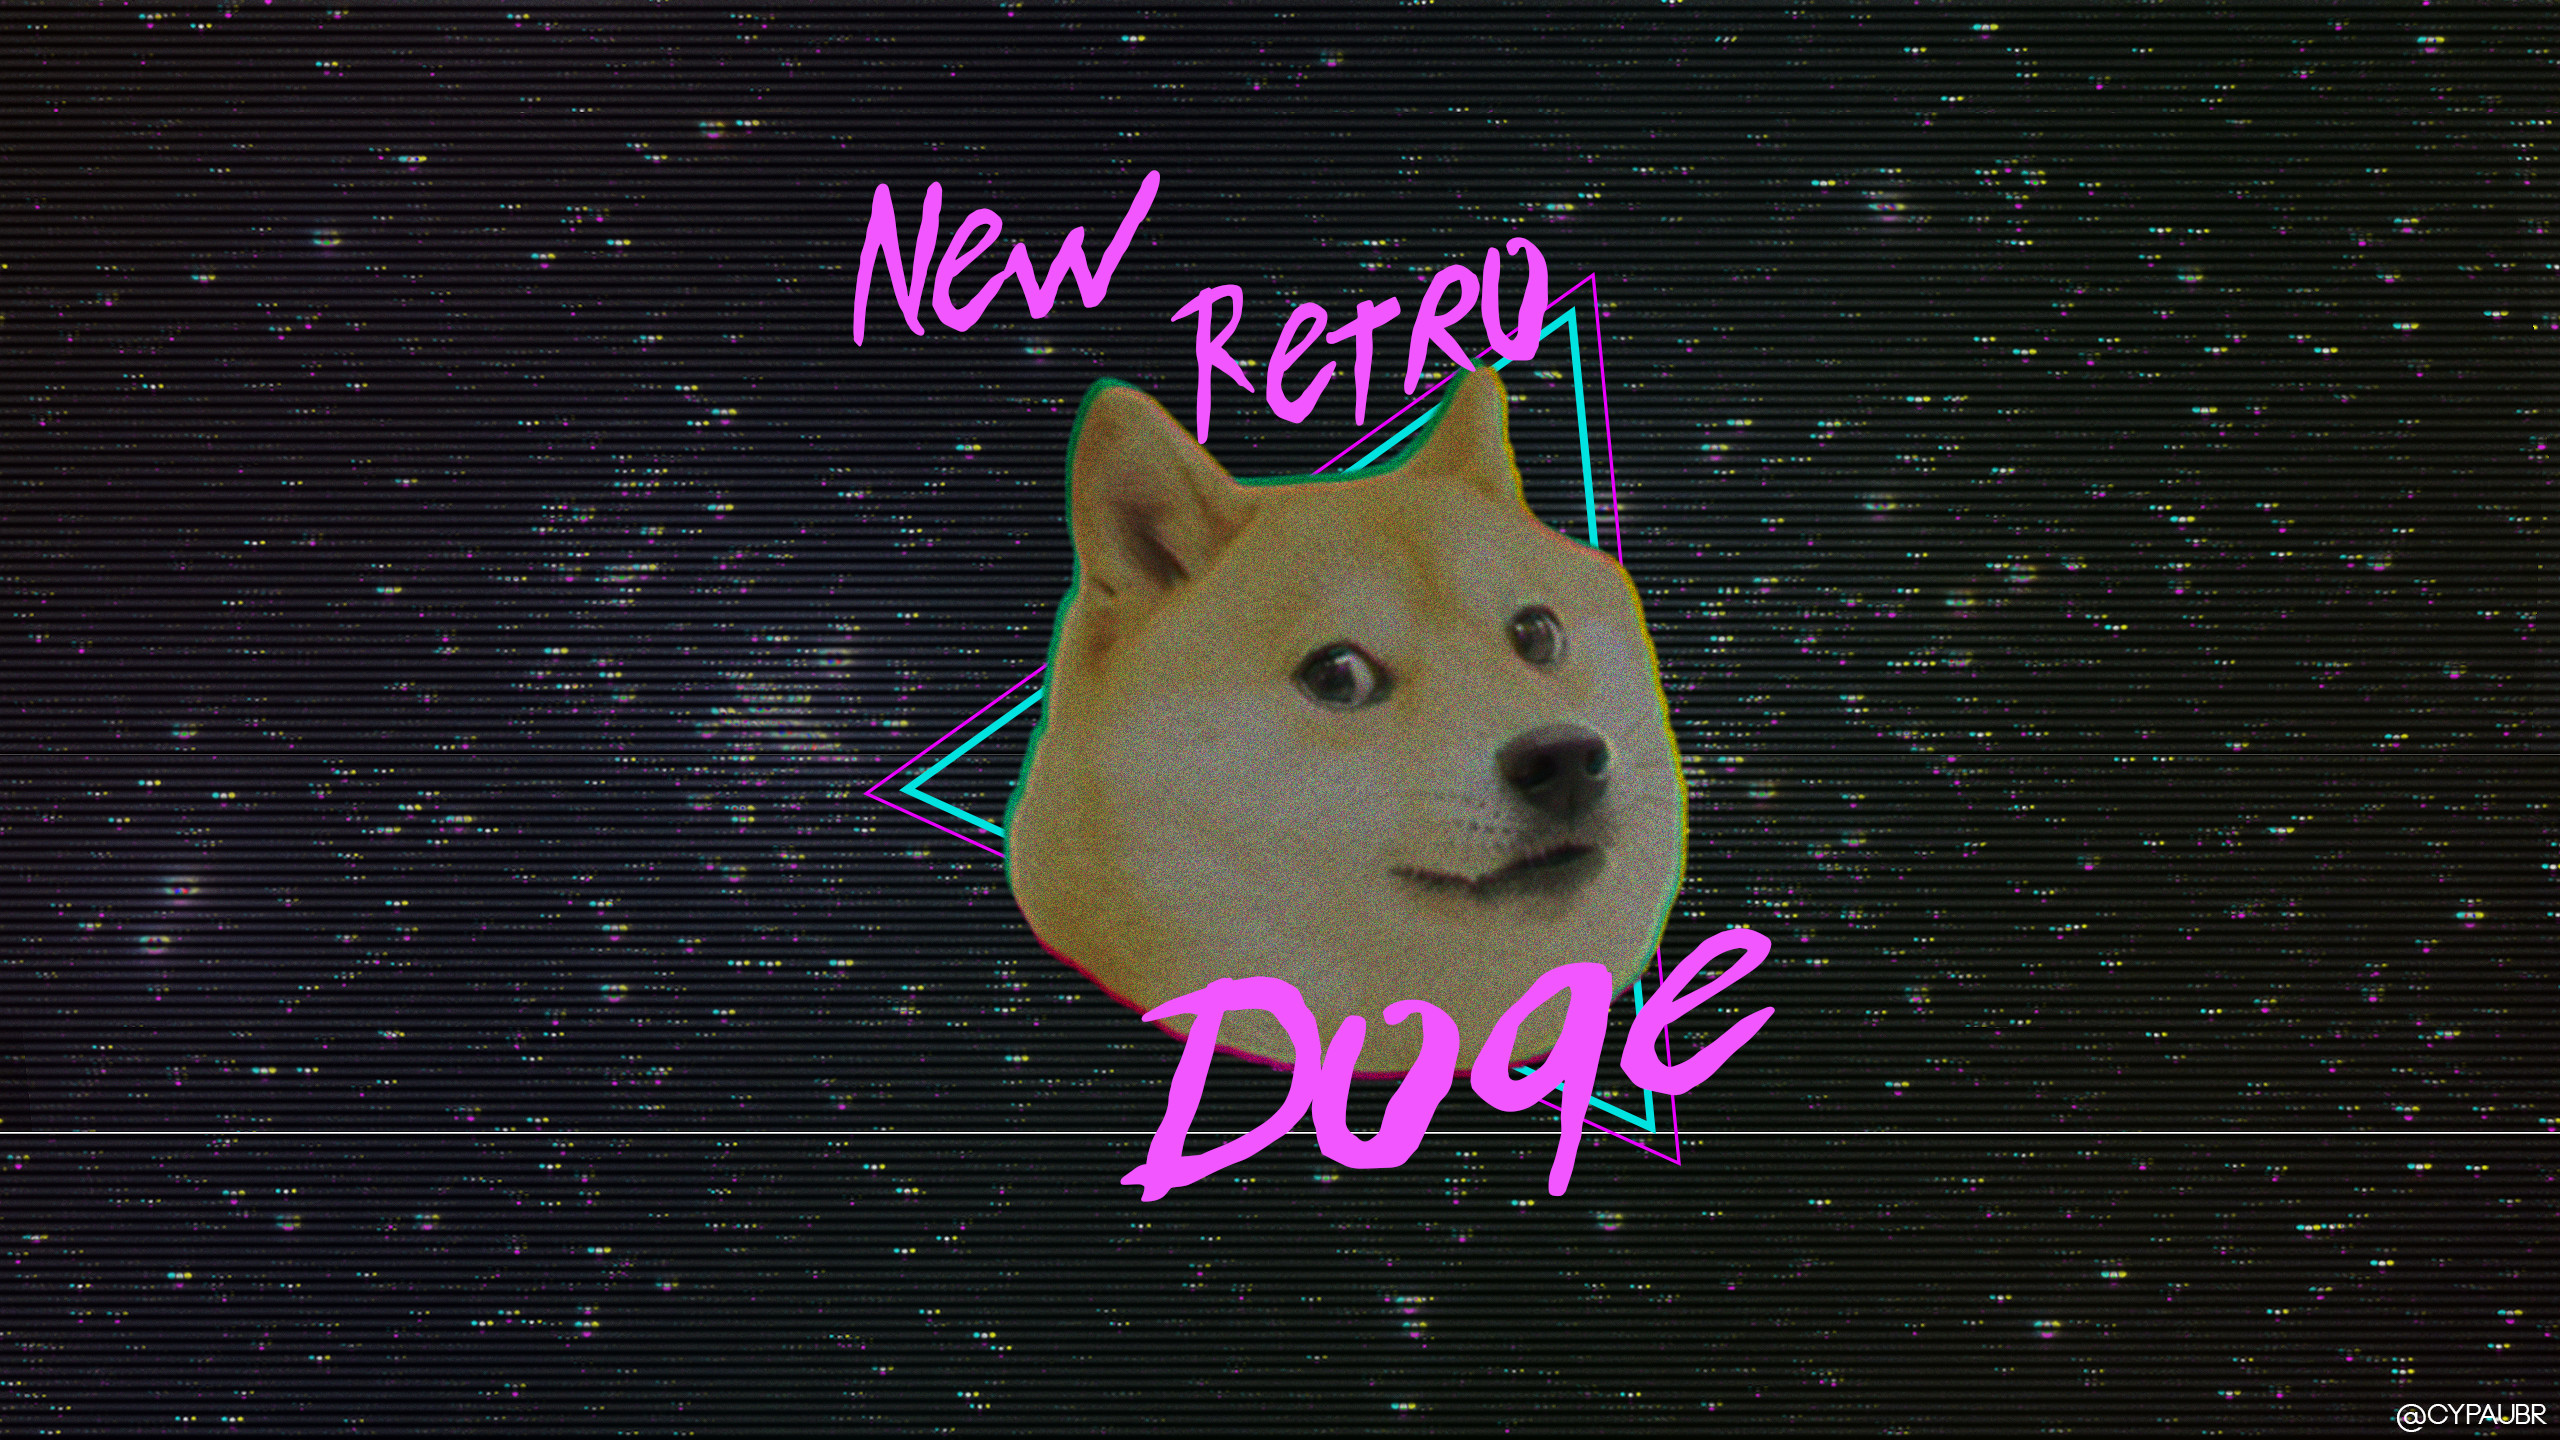 doge dog retro shiba meme inu background wave vhs wallpapers desktop hd aesthetic animals space backgrounds px mammal wallpaperplay wall